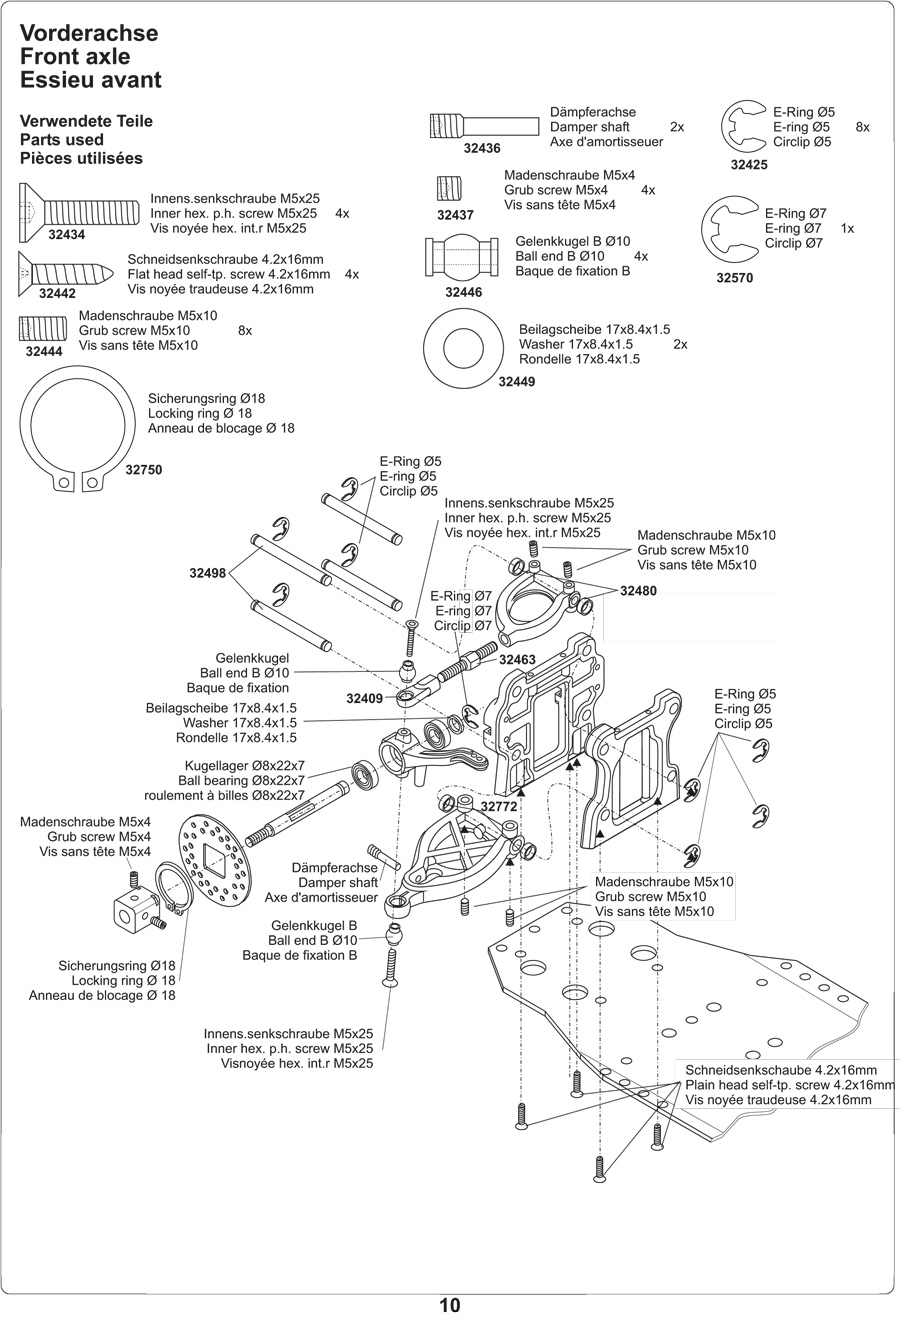 Gbc Funny Car Parts Auto Electrical Wiring Diagram Mirrocraft Ez Troller Boat 06 Mustang Fog Light Yamaha Starter Motor Schematic Symbols And